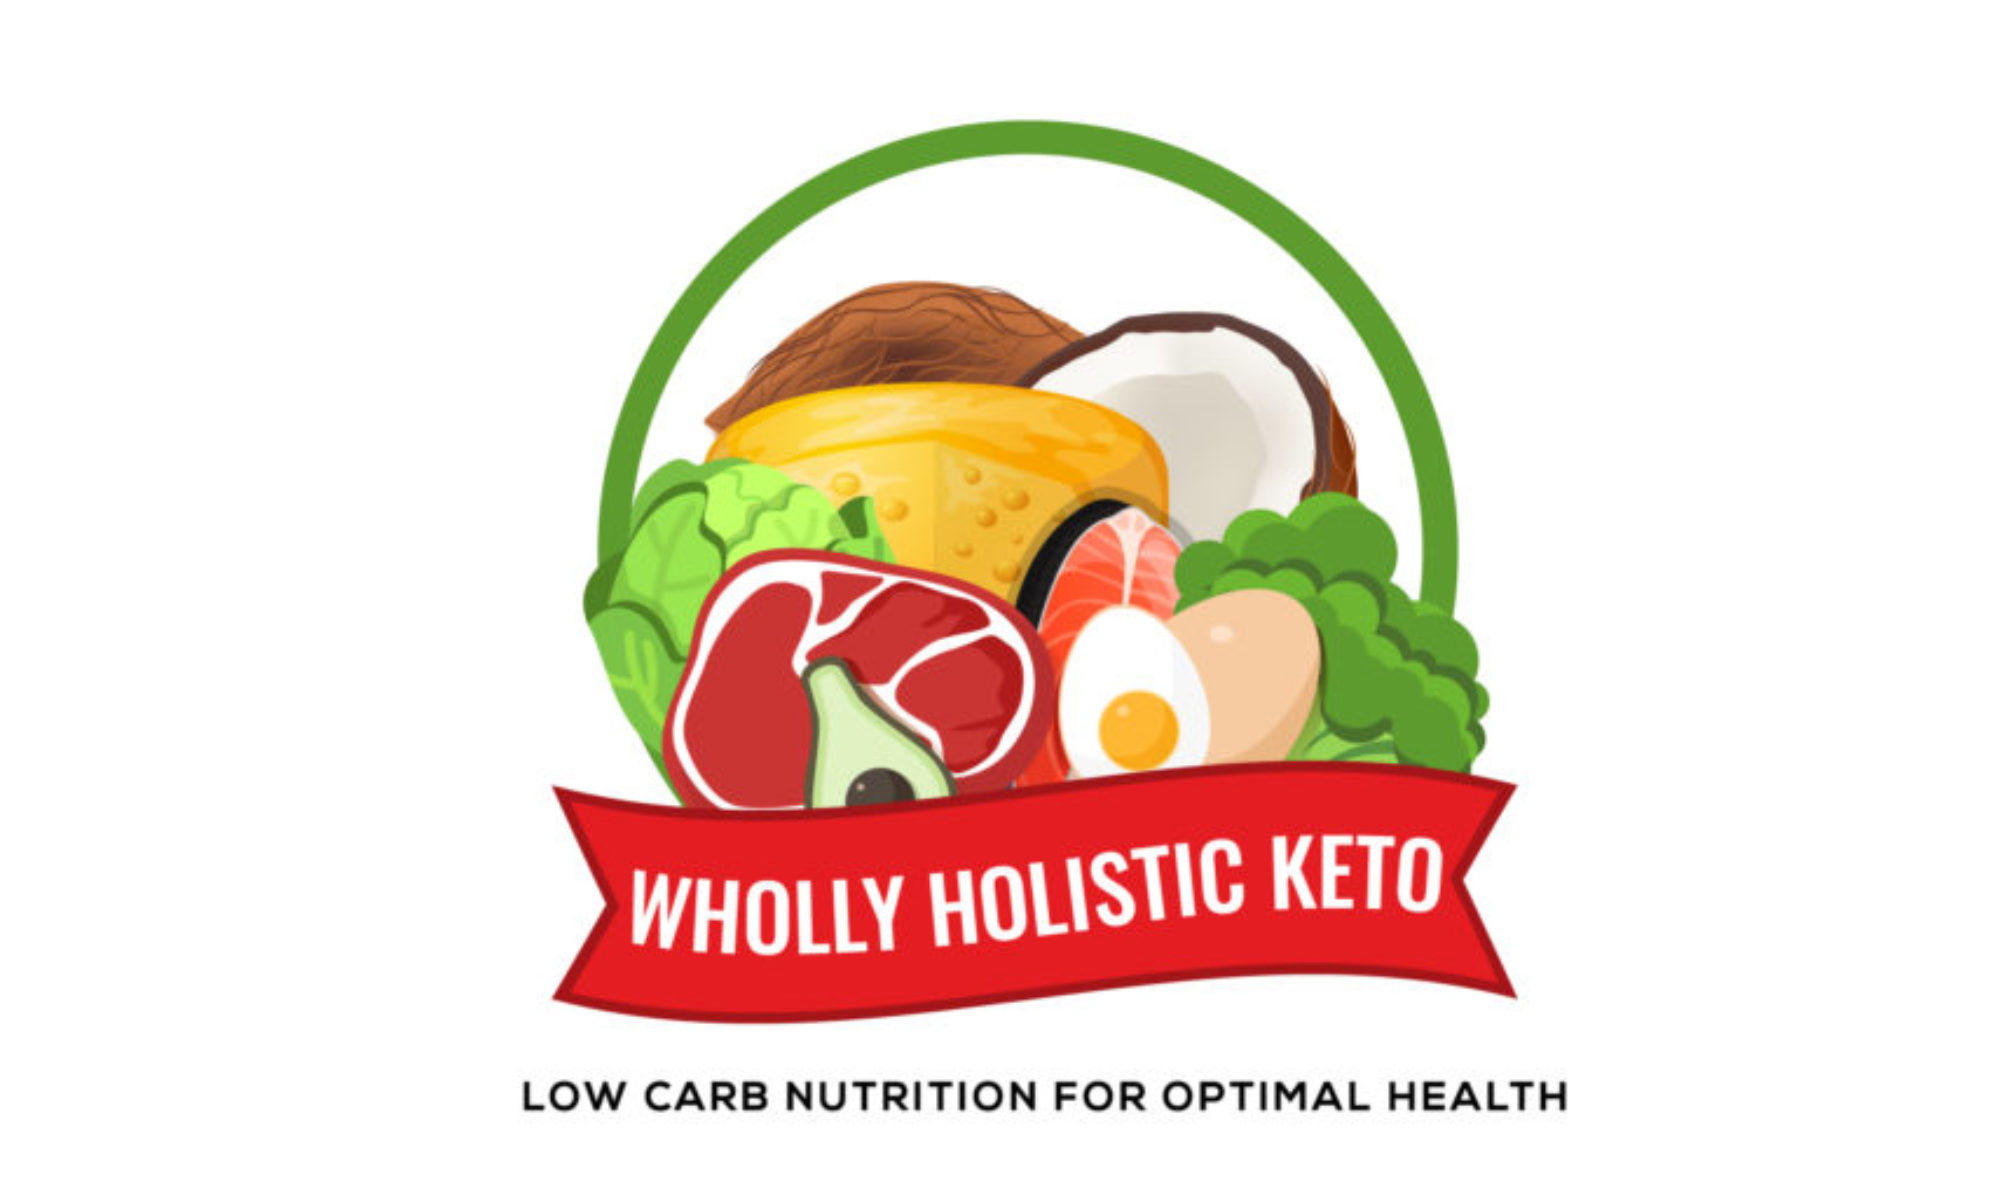 Wholly Holistic Keto